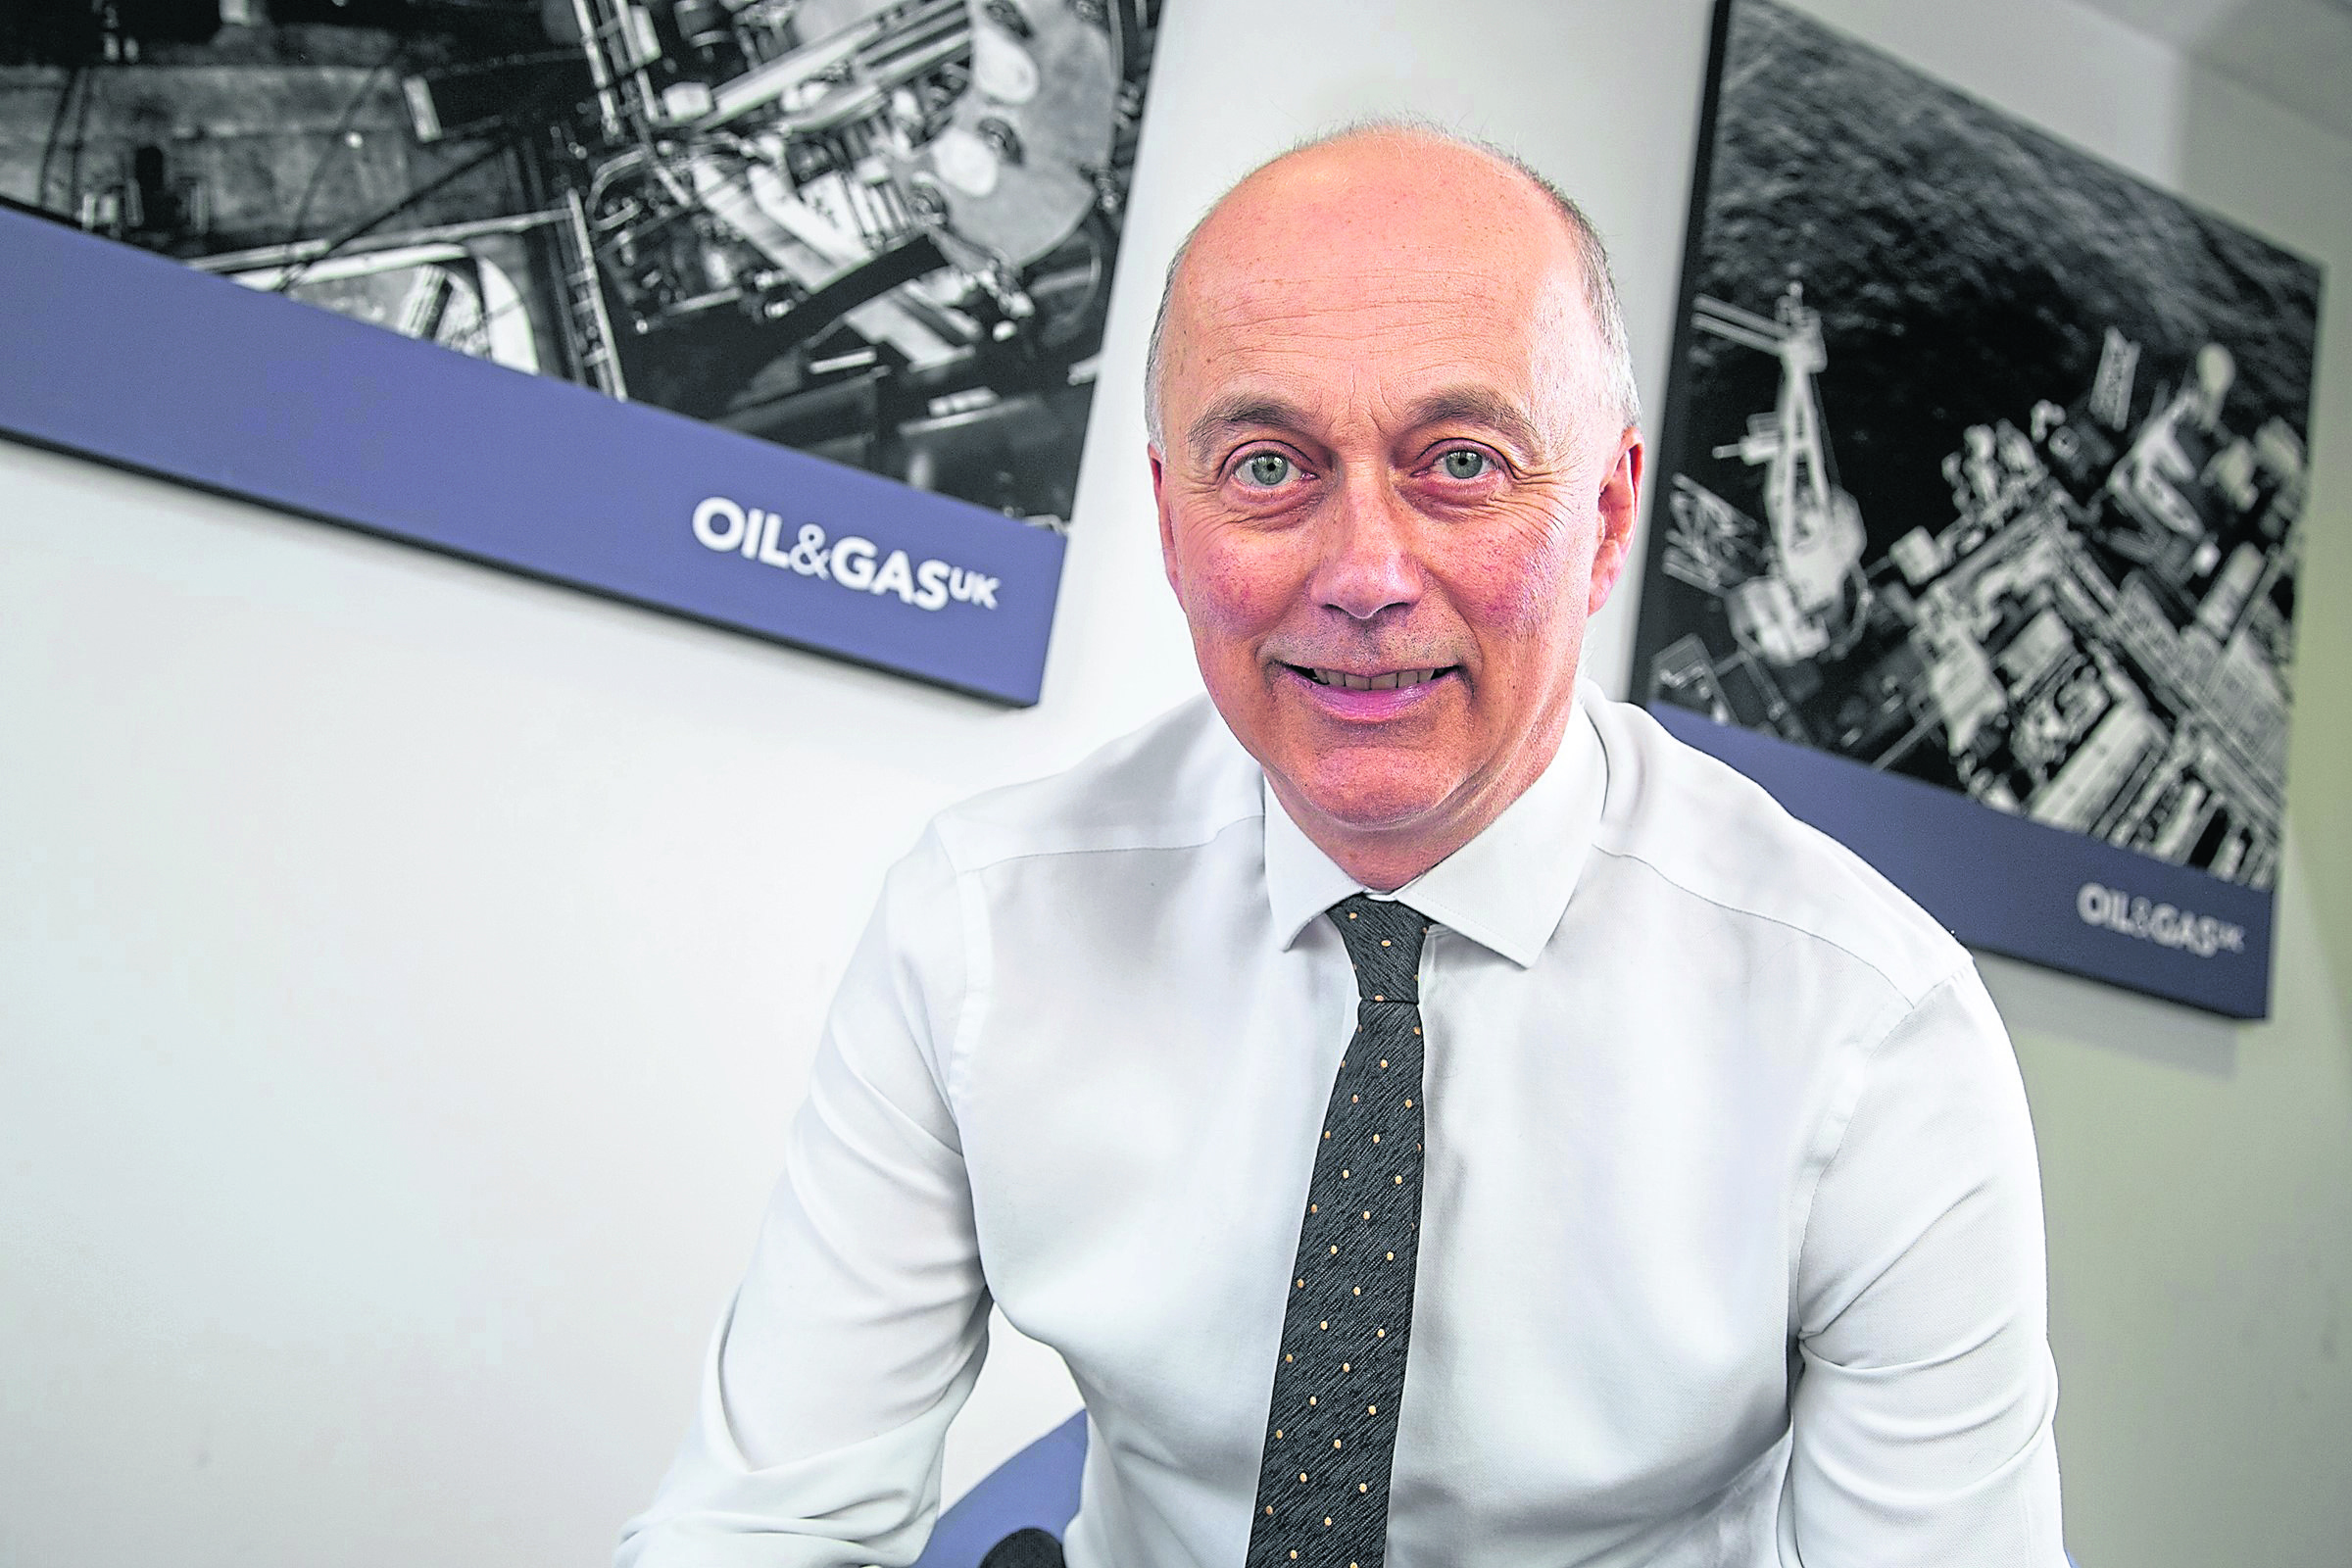 Oil and Gas UK health and safety manager Trevor Stapleton